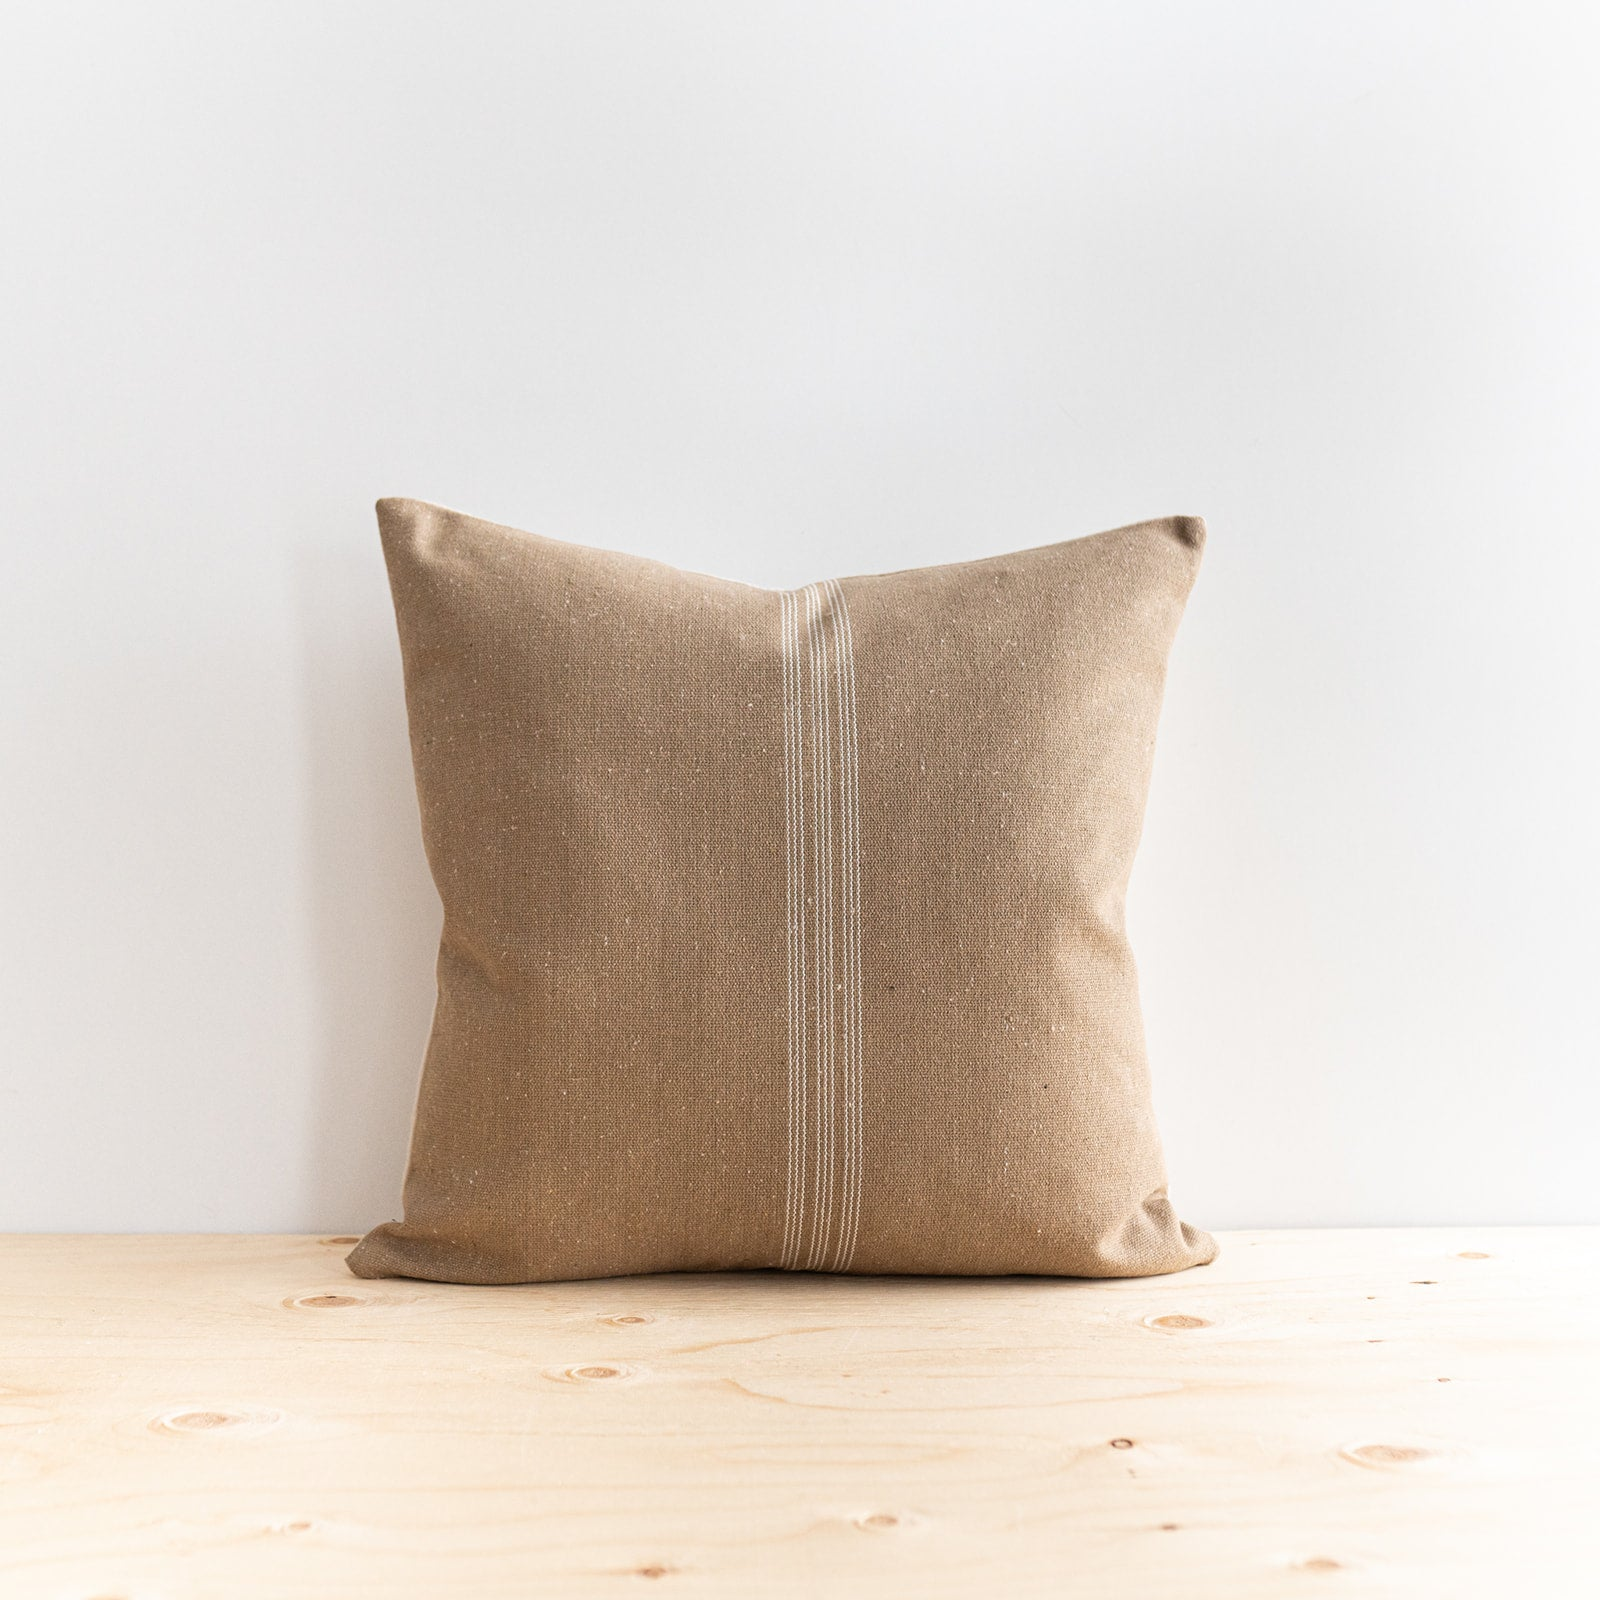 Pistachio Grain Sack Pillow